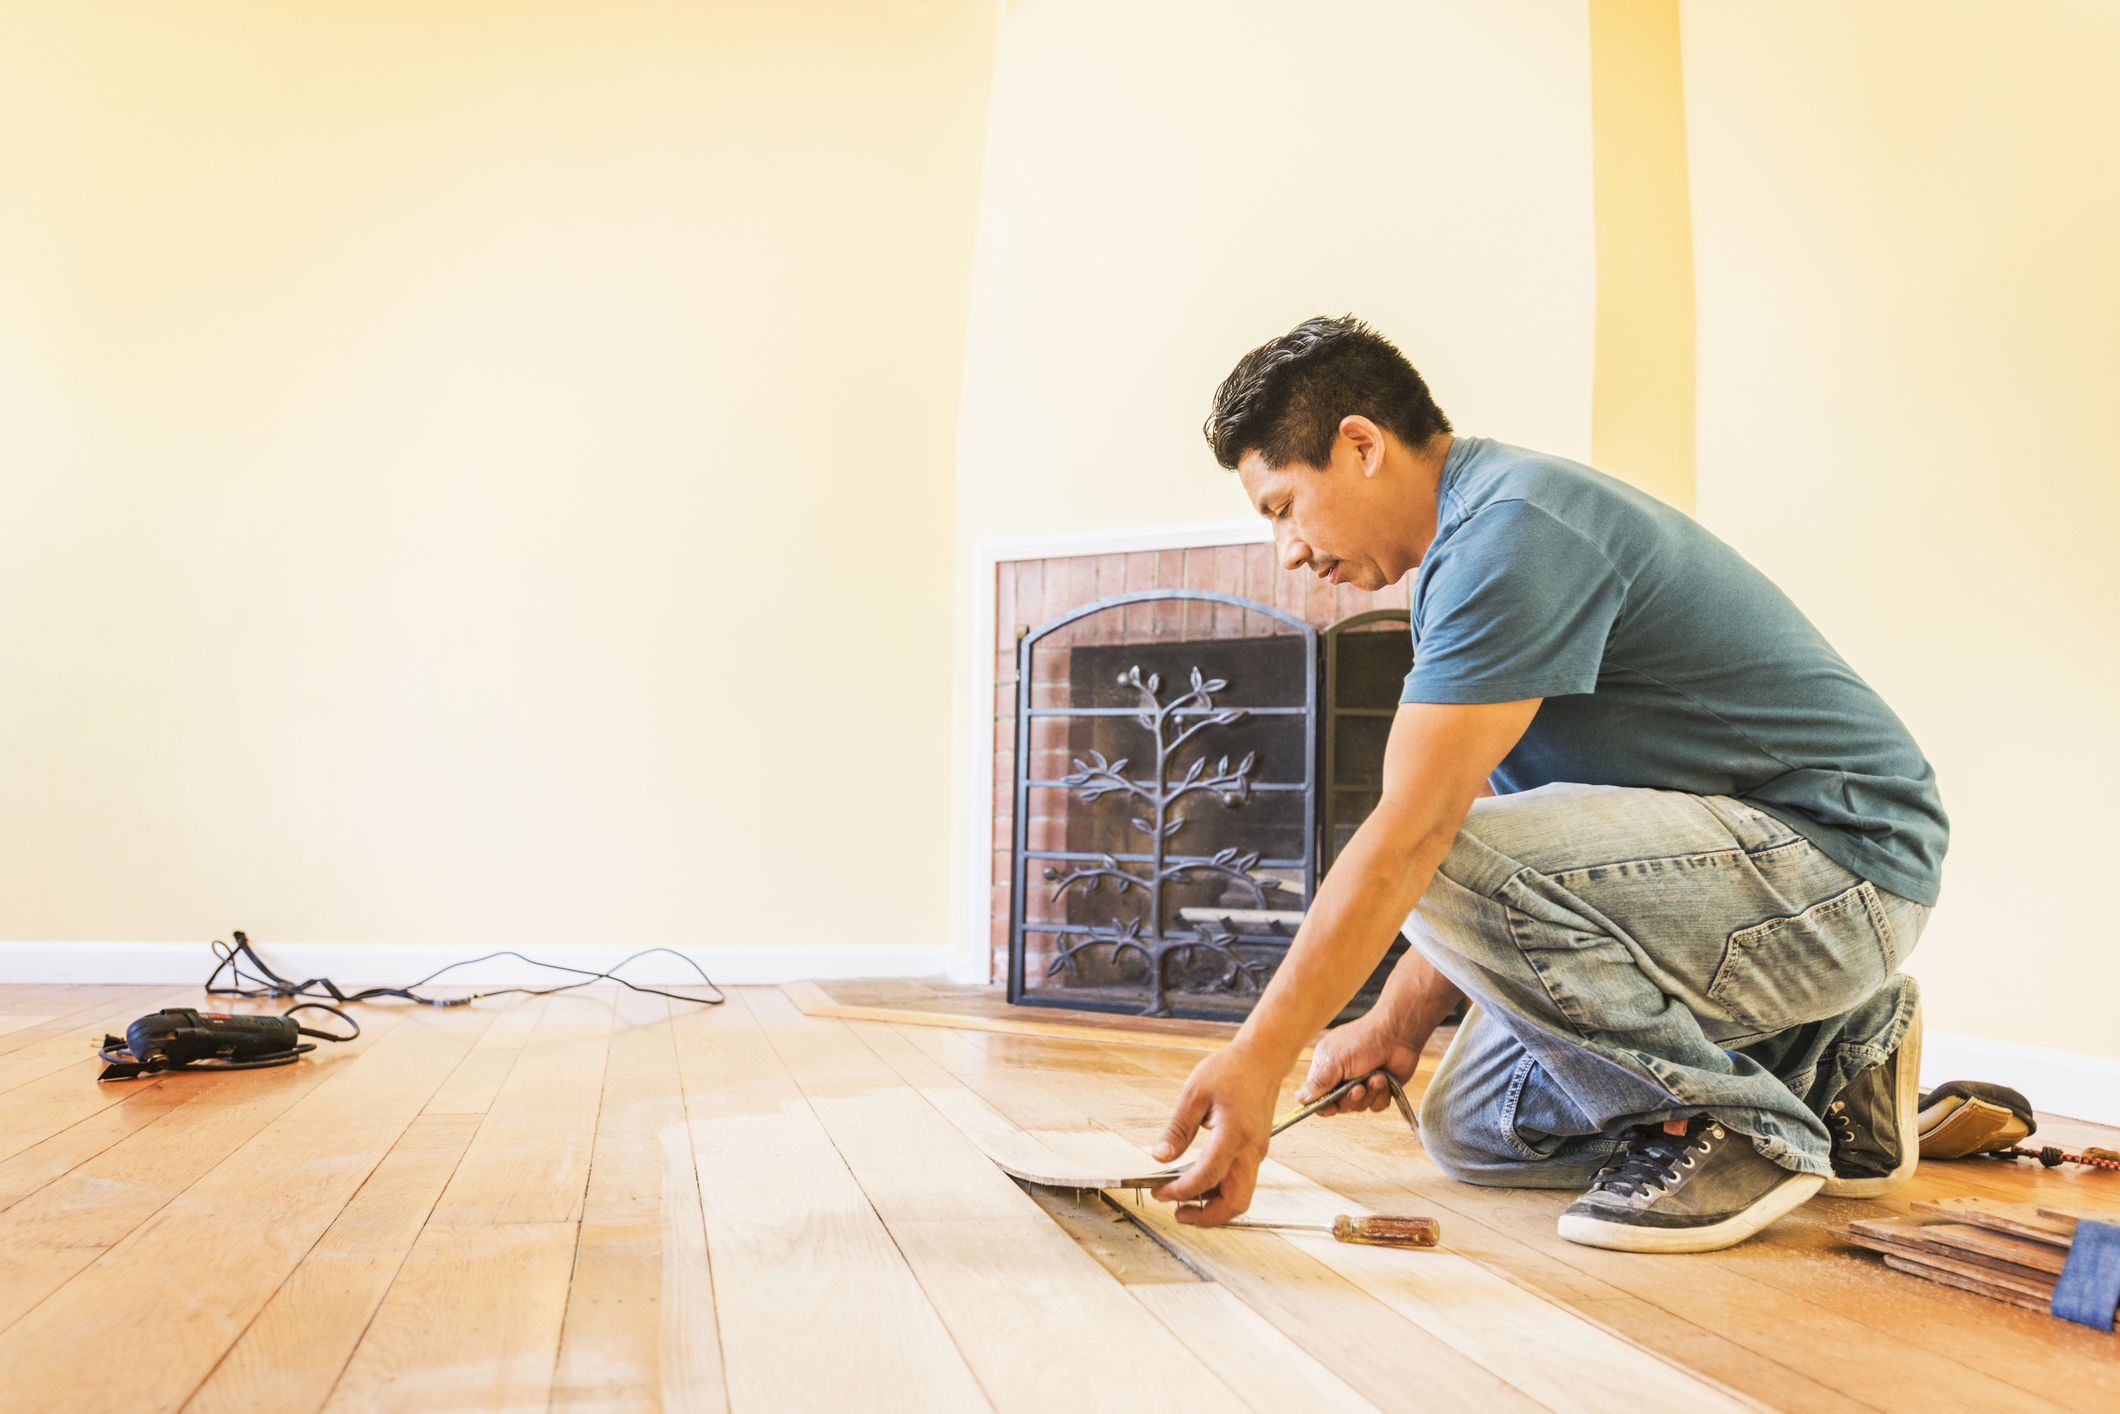 hardwood floor sanding contractors of hardwood installer how to hire and what to expect in installing wood flooring 592016327 57af51a23df78cd39cfa08d9